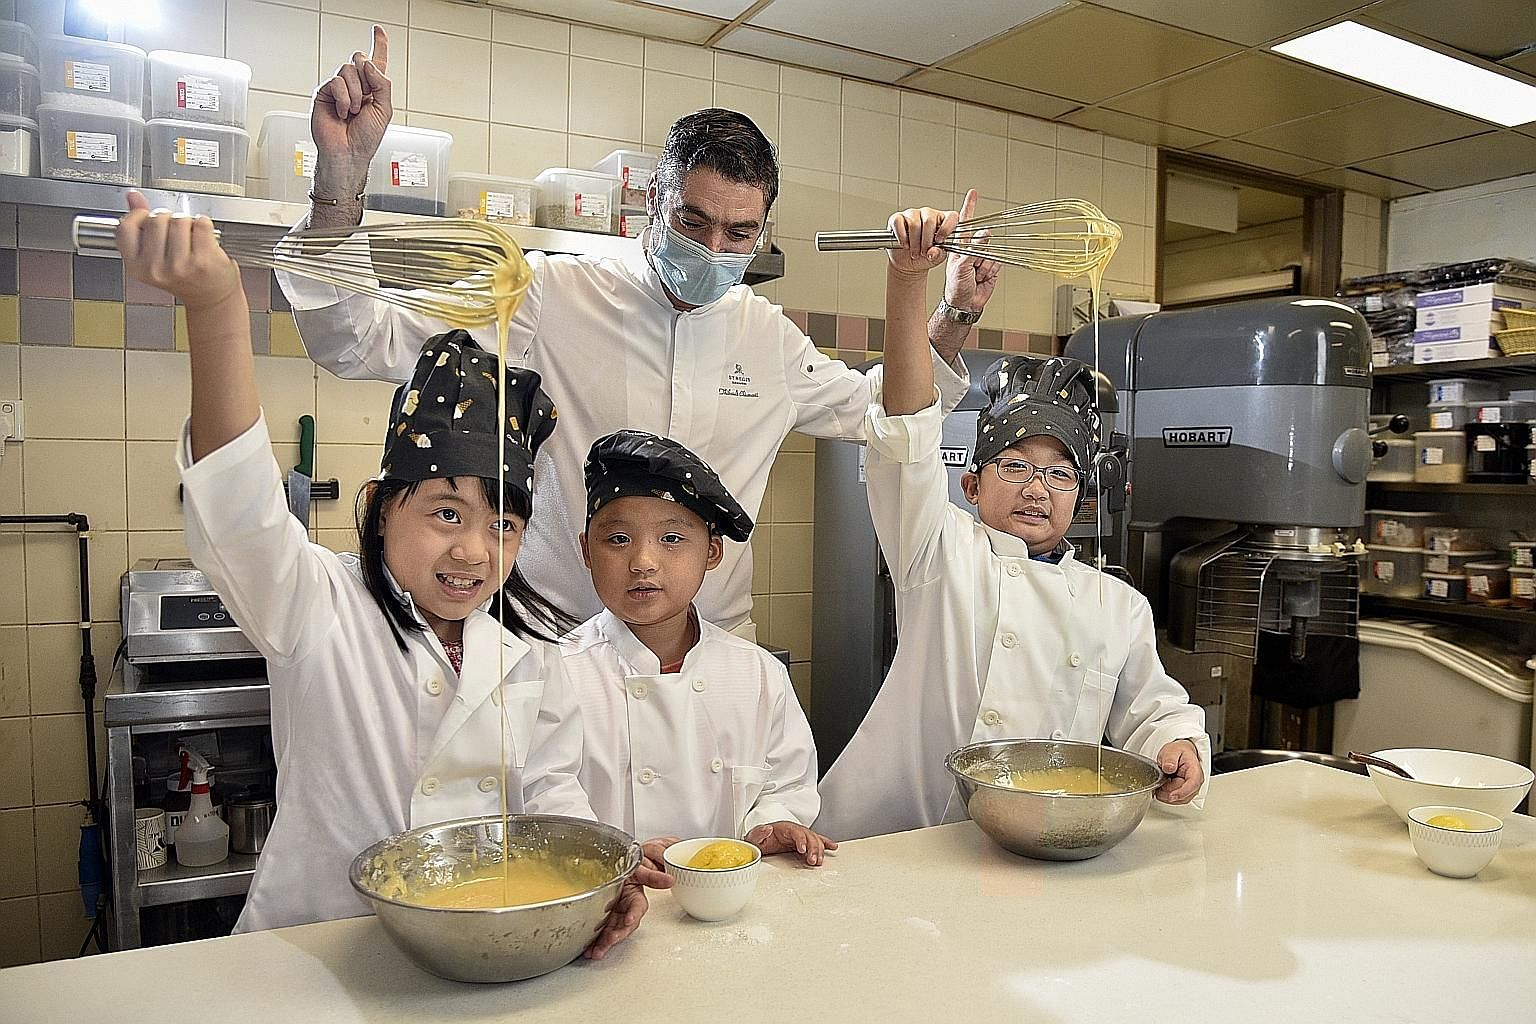 St Regis Singapore's executive chef Thibault Chiumenti guiding a Madeleine-making session and teaching kids to whisk and fold the batter. The St Regis Singapore lobby (above). The interiors of the hotel display old-world palatial charms. A teepee pad